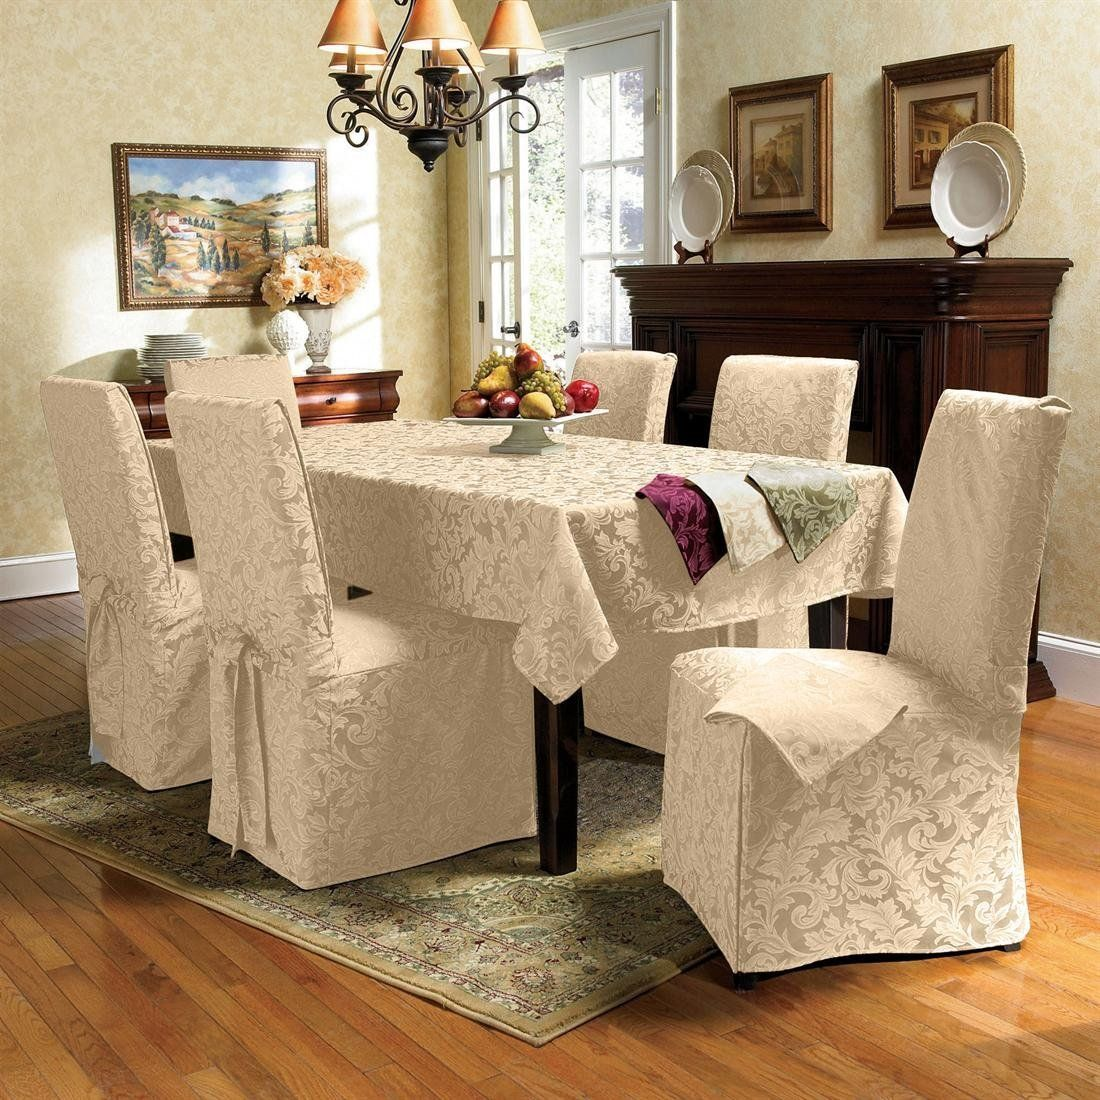 patterned dining room chair covers. 12 Beautiful Dining Chair Slipcover Design Ideas  Stunning Patterned Inspiration in Floral